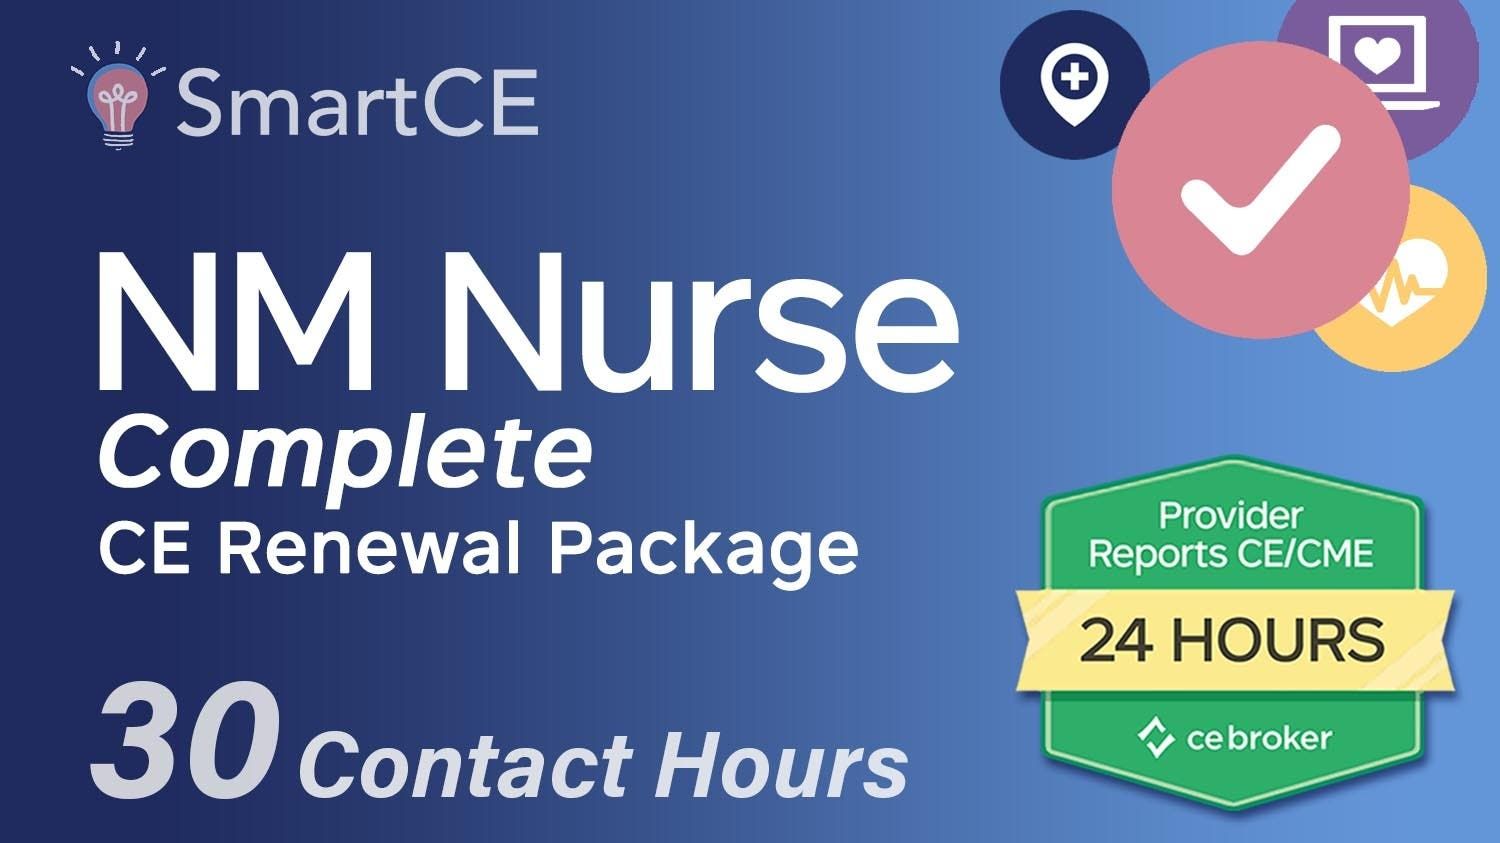 New Mexico Nurse Complete CE Renewal Package: 30 Contact Hours//20-571431/20-605534/20-577091/20-581291/20-581337/20-581325/20-605536/20-619940/20-619832/20-571425